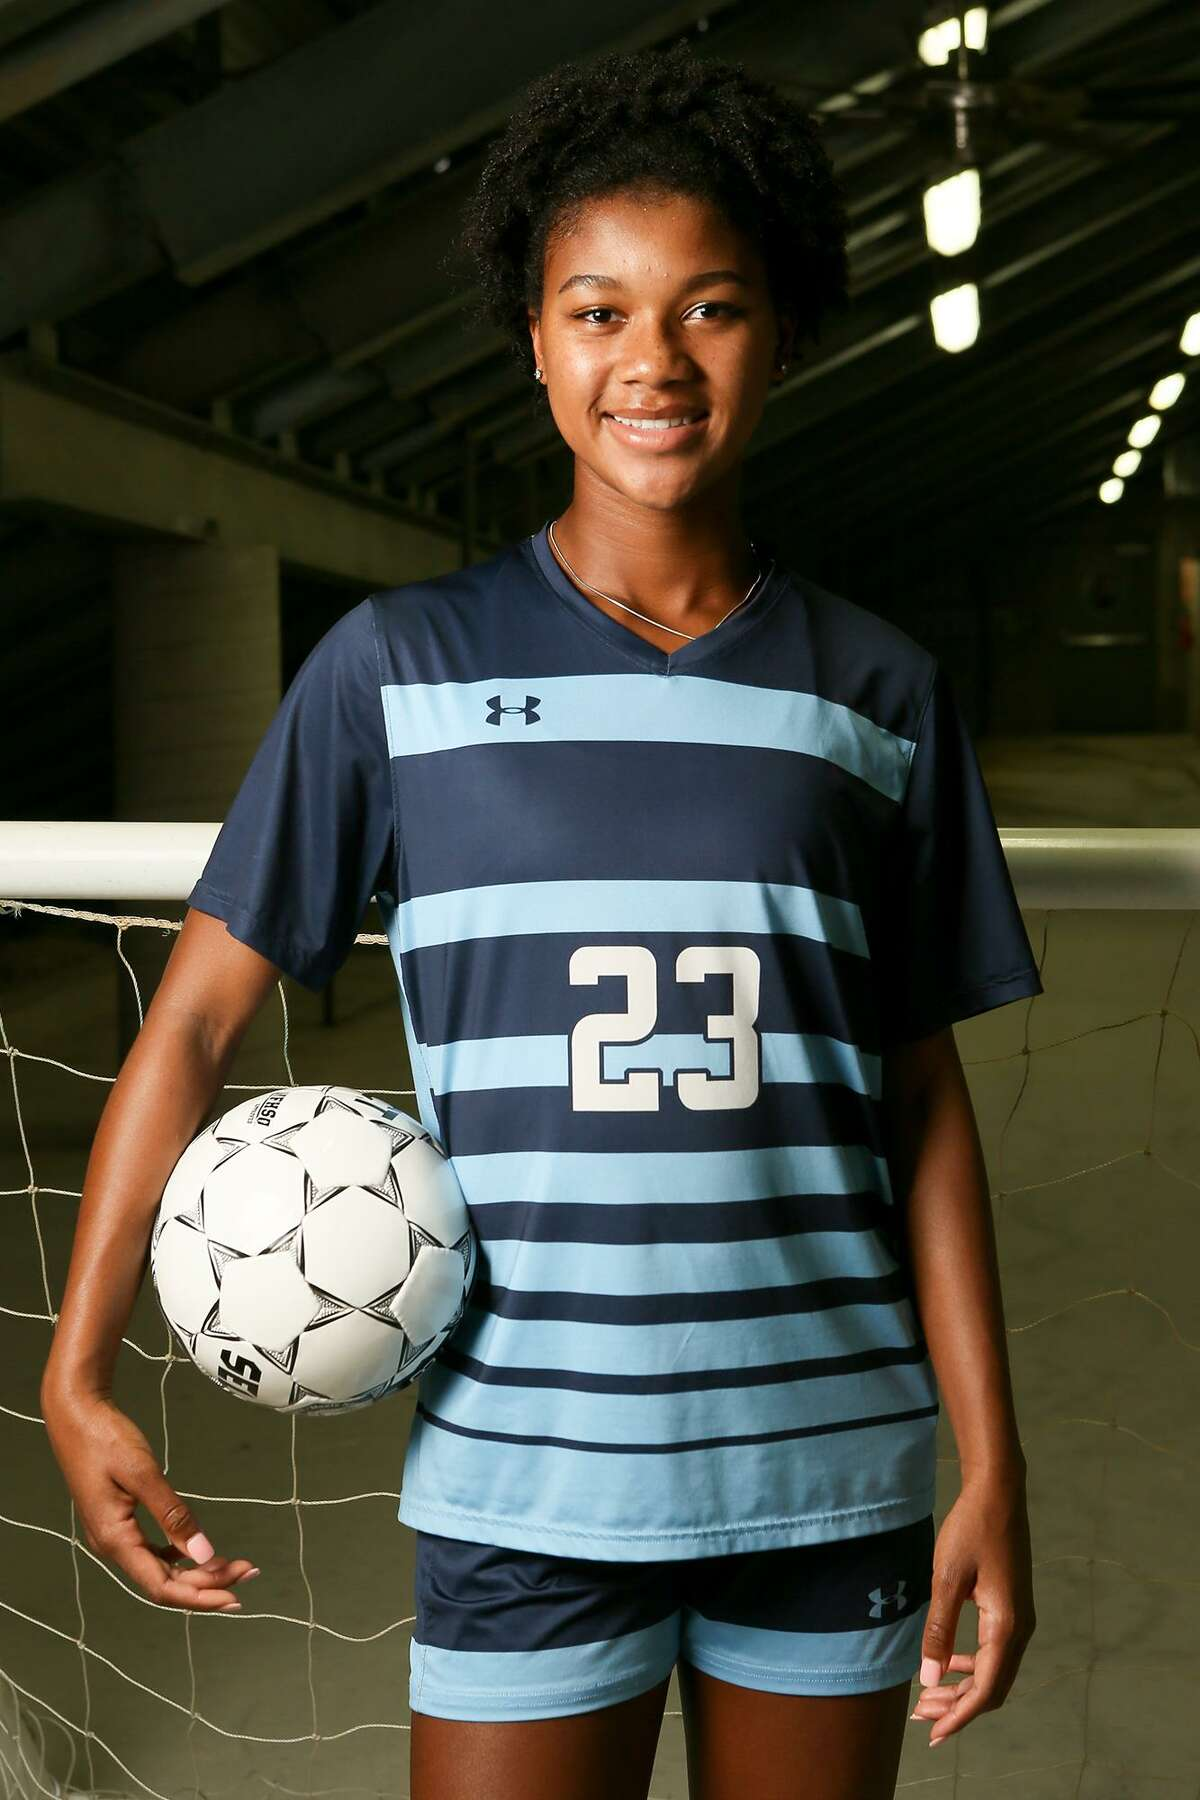 Khori Banks, Johnson soccer, Sr. The forward tallied 30 goals and was named the District 27-6A MVP last season. Banks has 60 career goals, a school record. The Jaguars are counting on her as they try to qualify for the Region IV-6A tournament for the second time in three years.